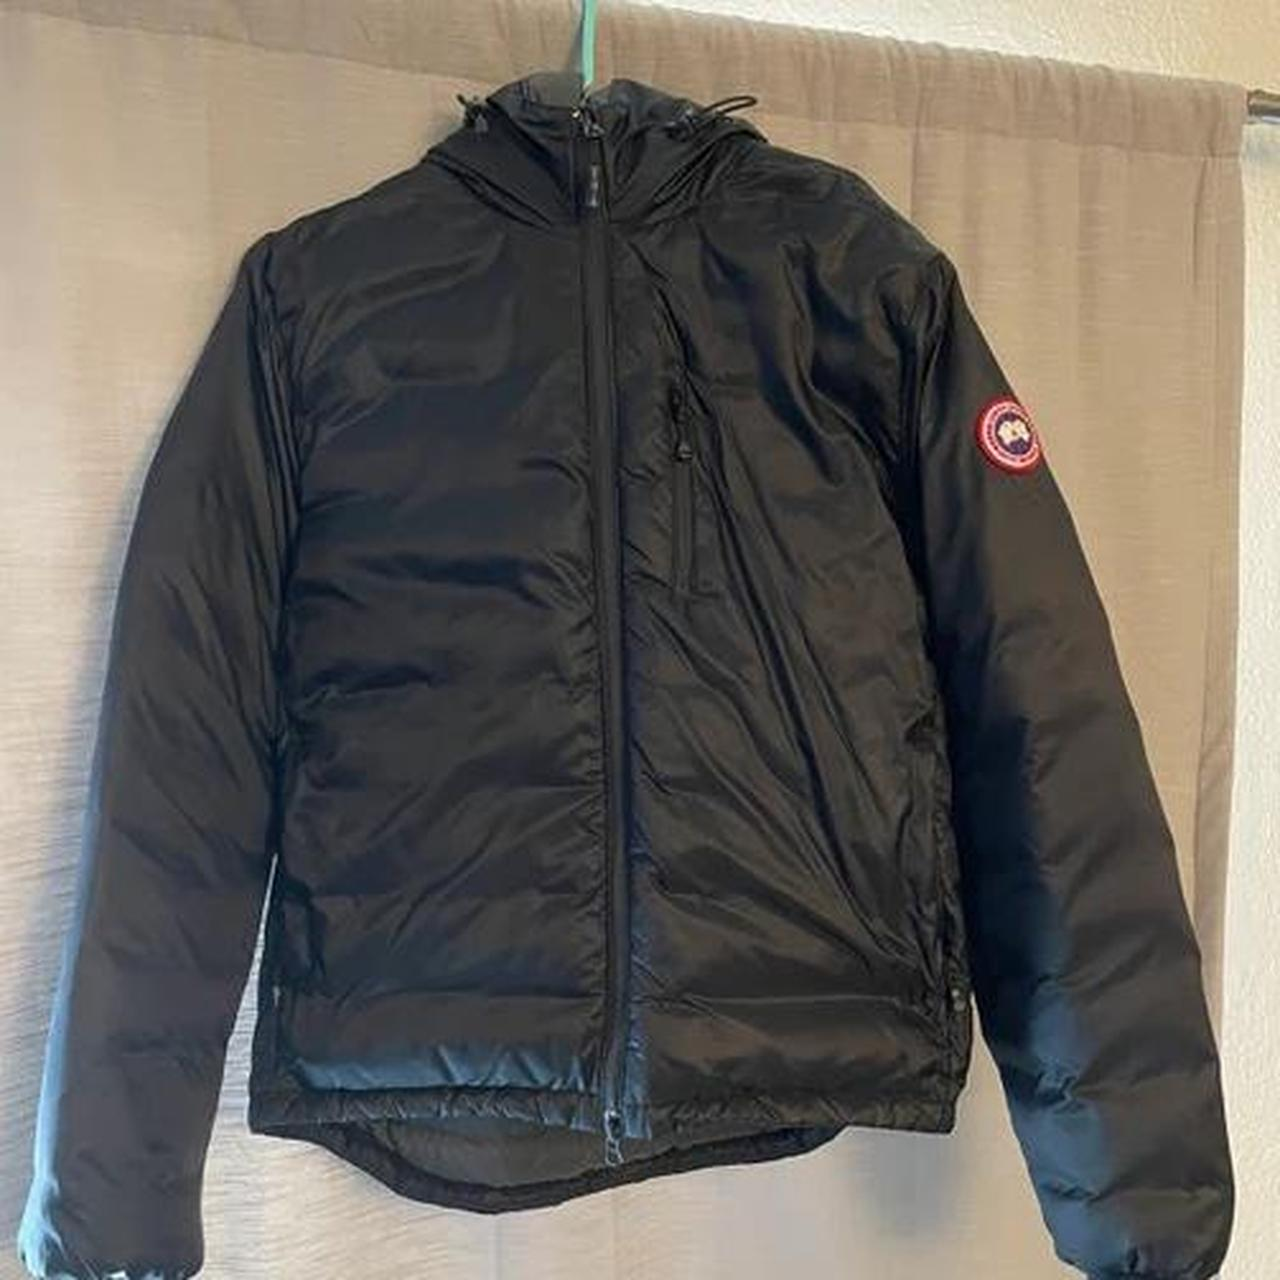 Product Image 1 - Canada Goose Lodge Hoodie Size: US